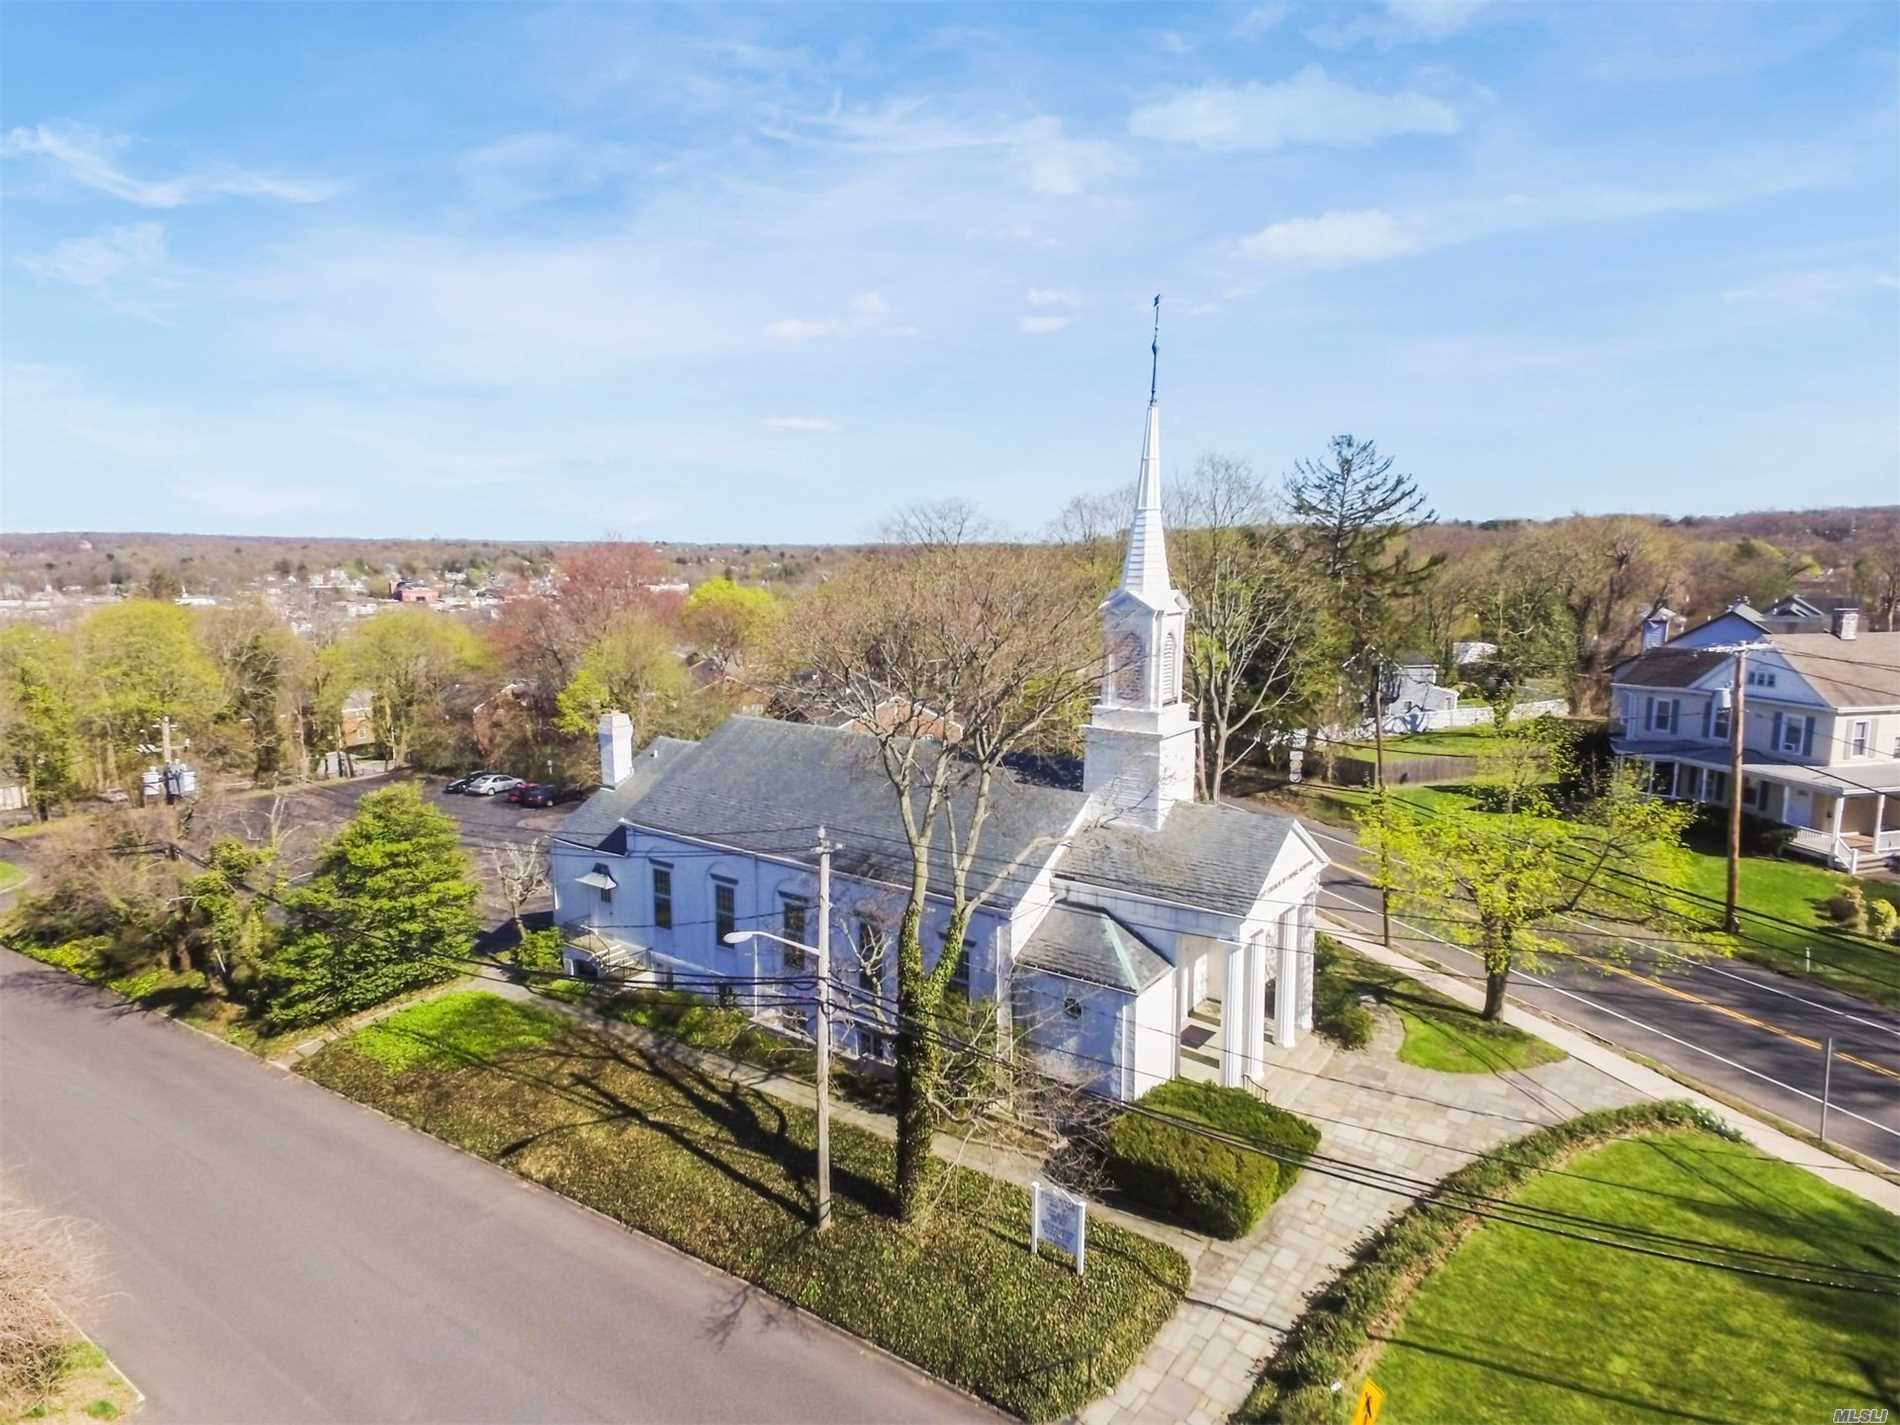 Expected To Yield 4 Conforming Building Lots Zoned R5 With Existing Church Structure. Tax Map #0400-067.00-040.004